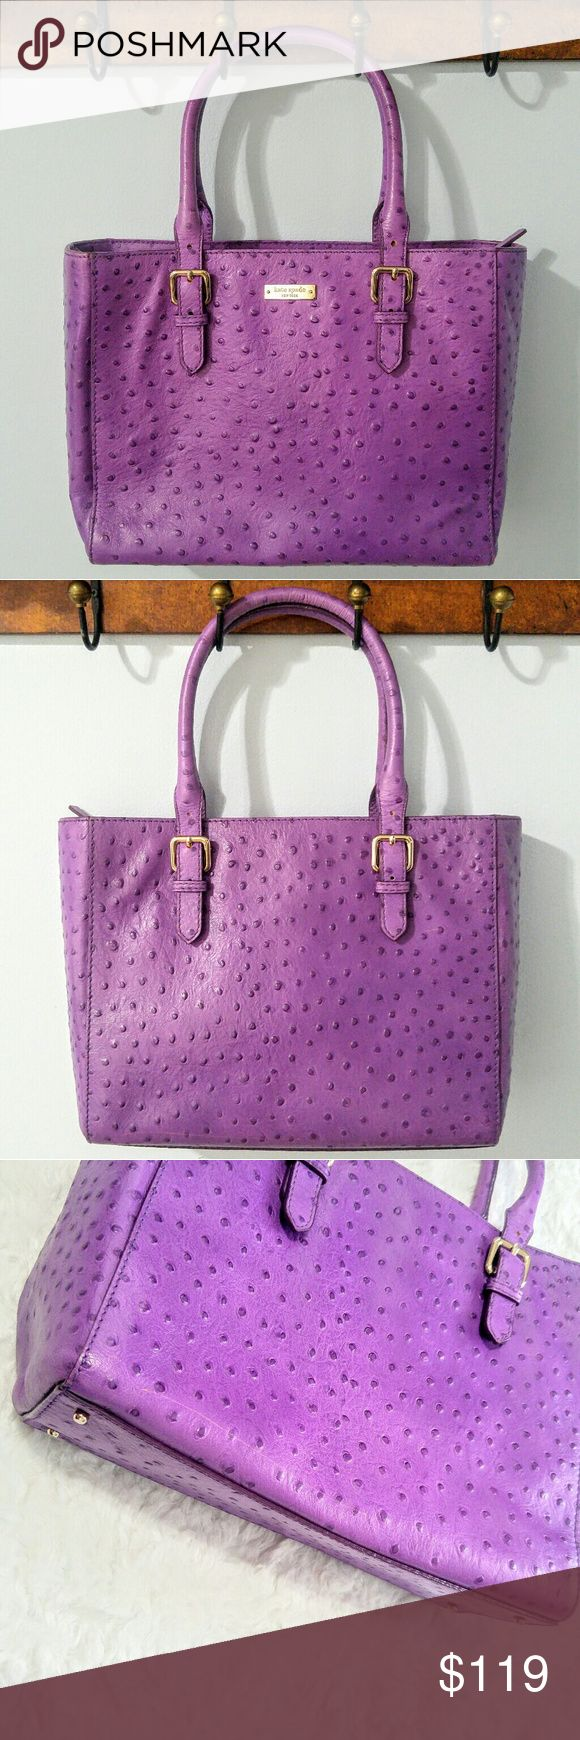 "Kate Spade Purple Ostrich Embossed Tote Beautiful purple authentic Kate Spade ostrich embossed leather handbag. Beautiful and unique hard to find/rare color! Height 9.5"", width 3.5"" (at bottom), length 12"" (at bottom), drop length 6.5"".  Minor flaws: a few scratches on back, & bottom, including a long thin scratch almost all the way across bottom back side, slight corner wear, tiny faint makeup specks inside on liner, one crack on handle and small spots of wear on handle. Small pen mark at…"